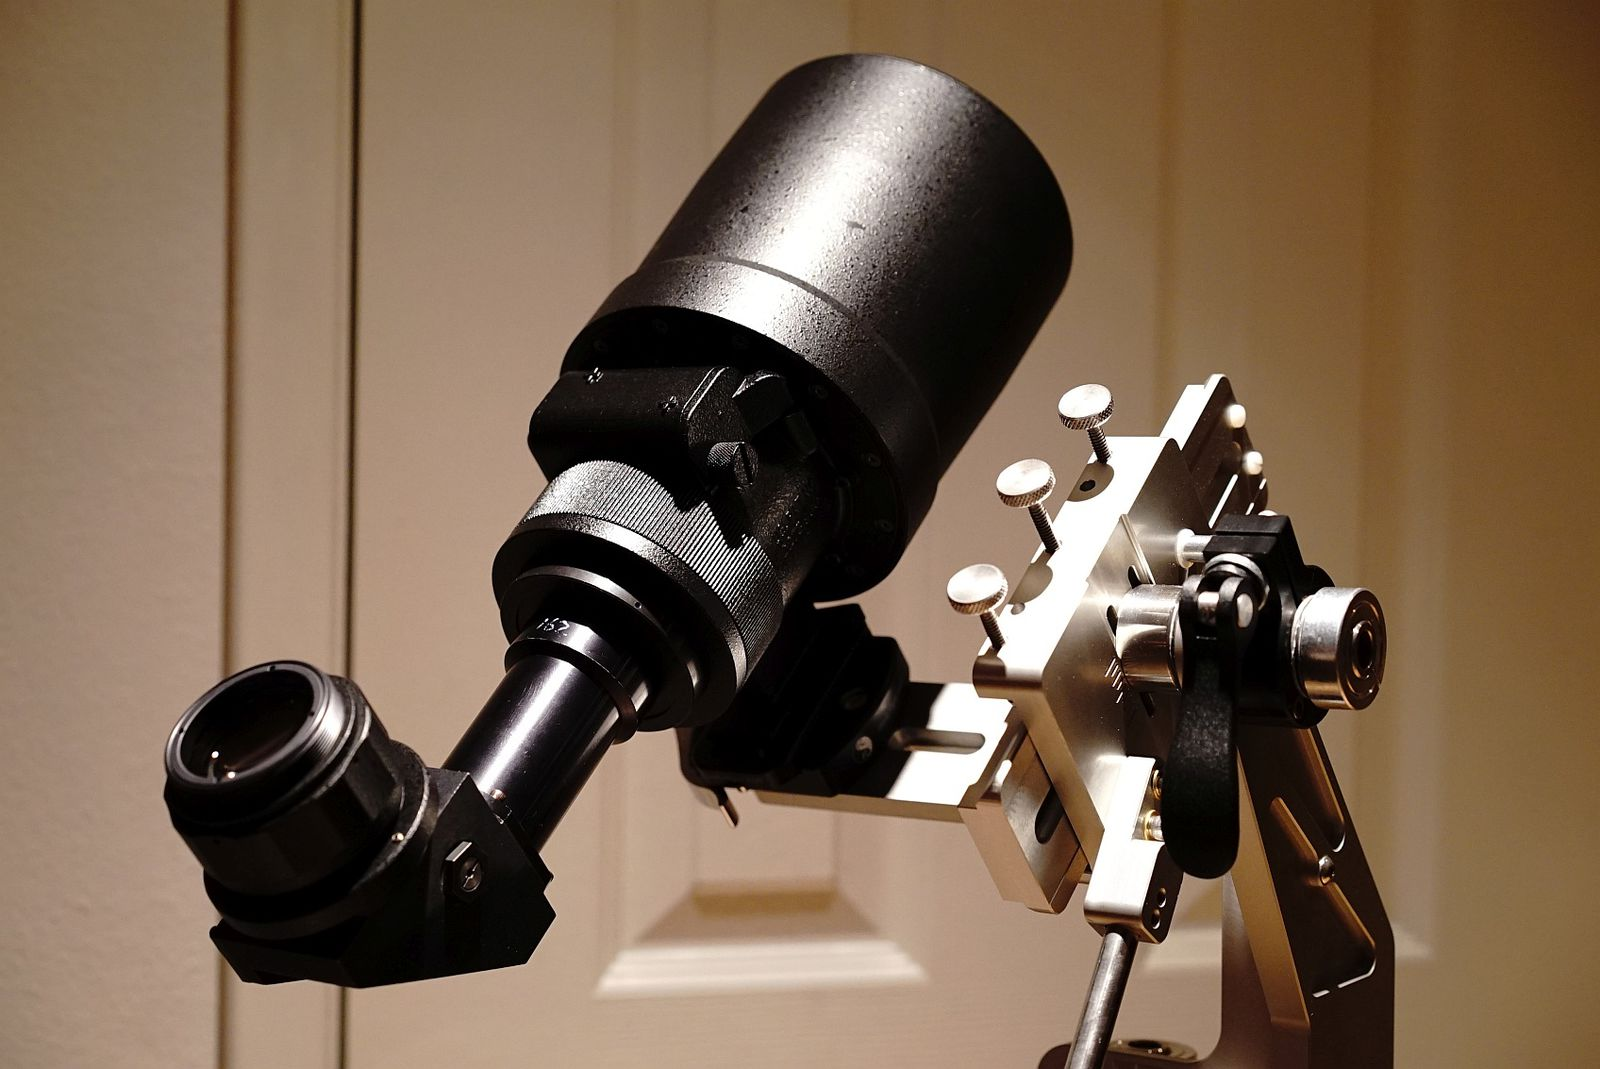 Star tron mk428 lr170 lens with right angle relay and eyepiece on